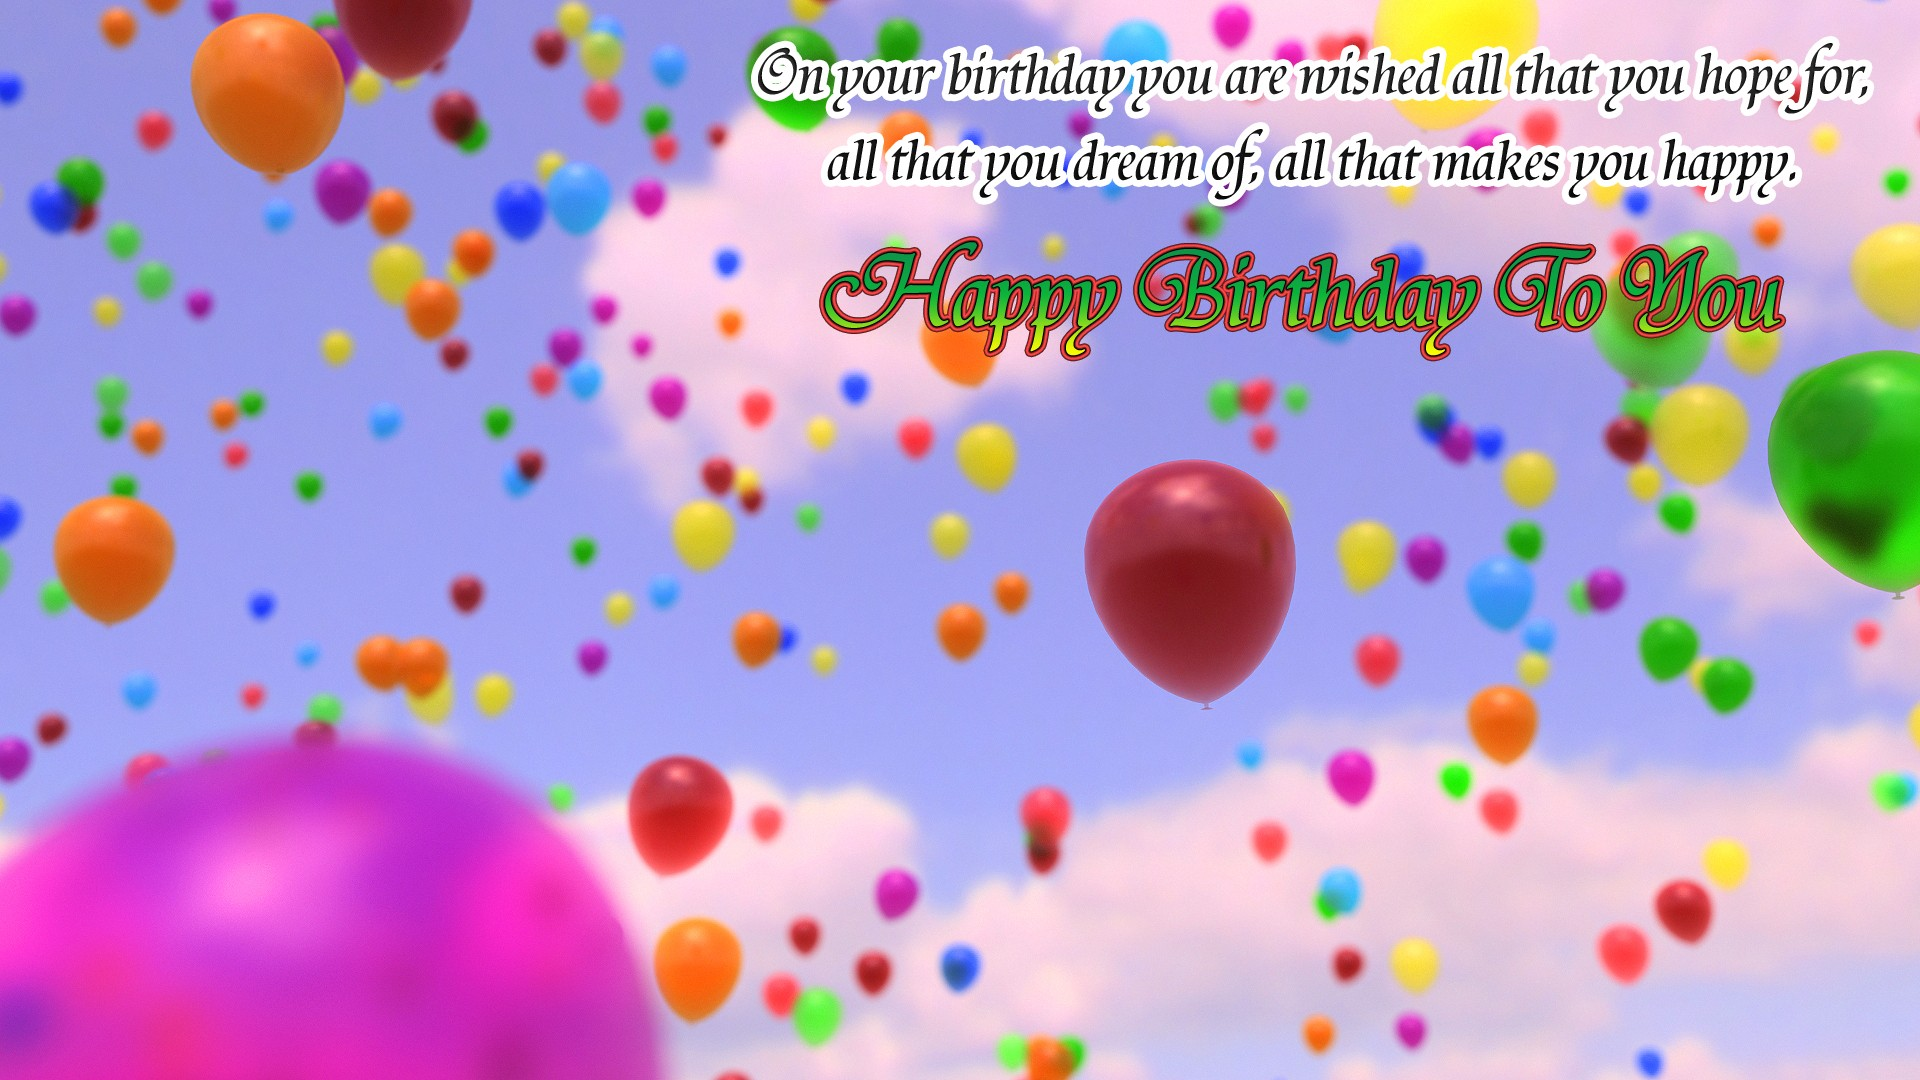 birthday wishes for friend images free download ; bc58cef1c7a386c6dabcb016f0b70b62